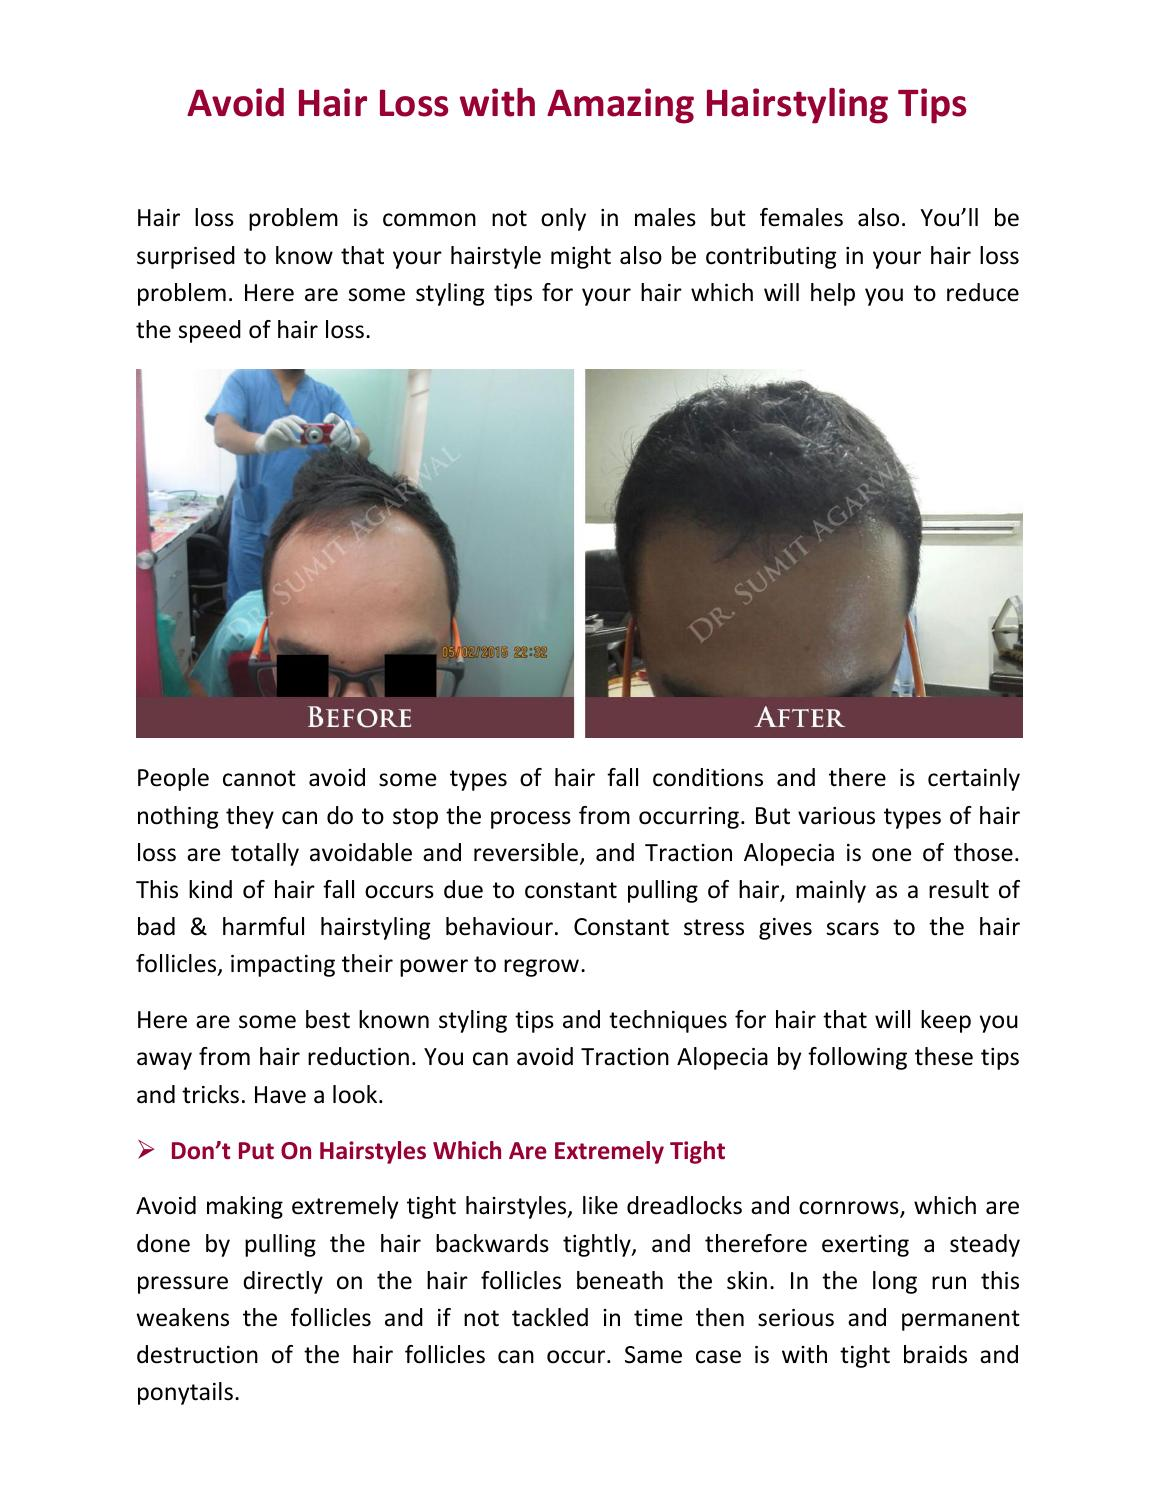 Avoid Hair Loss With Amazing Hairstyling Tips By Harleys